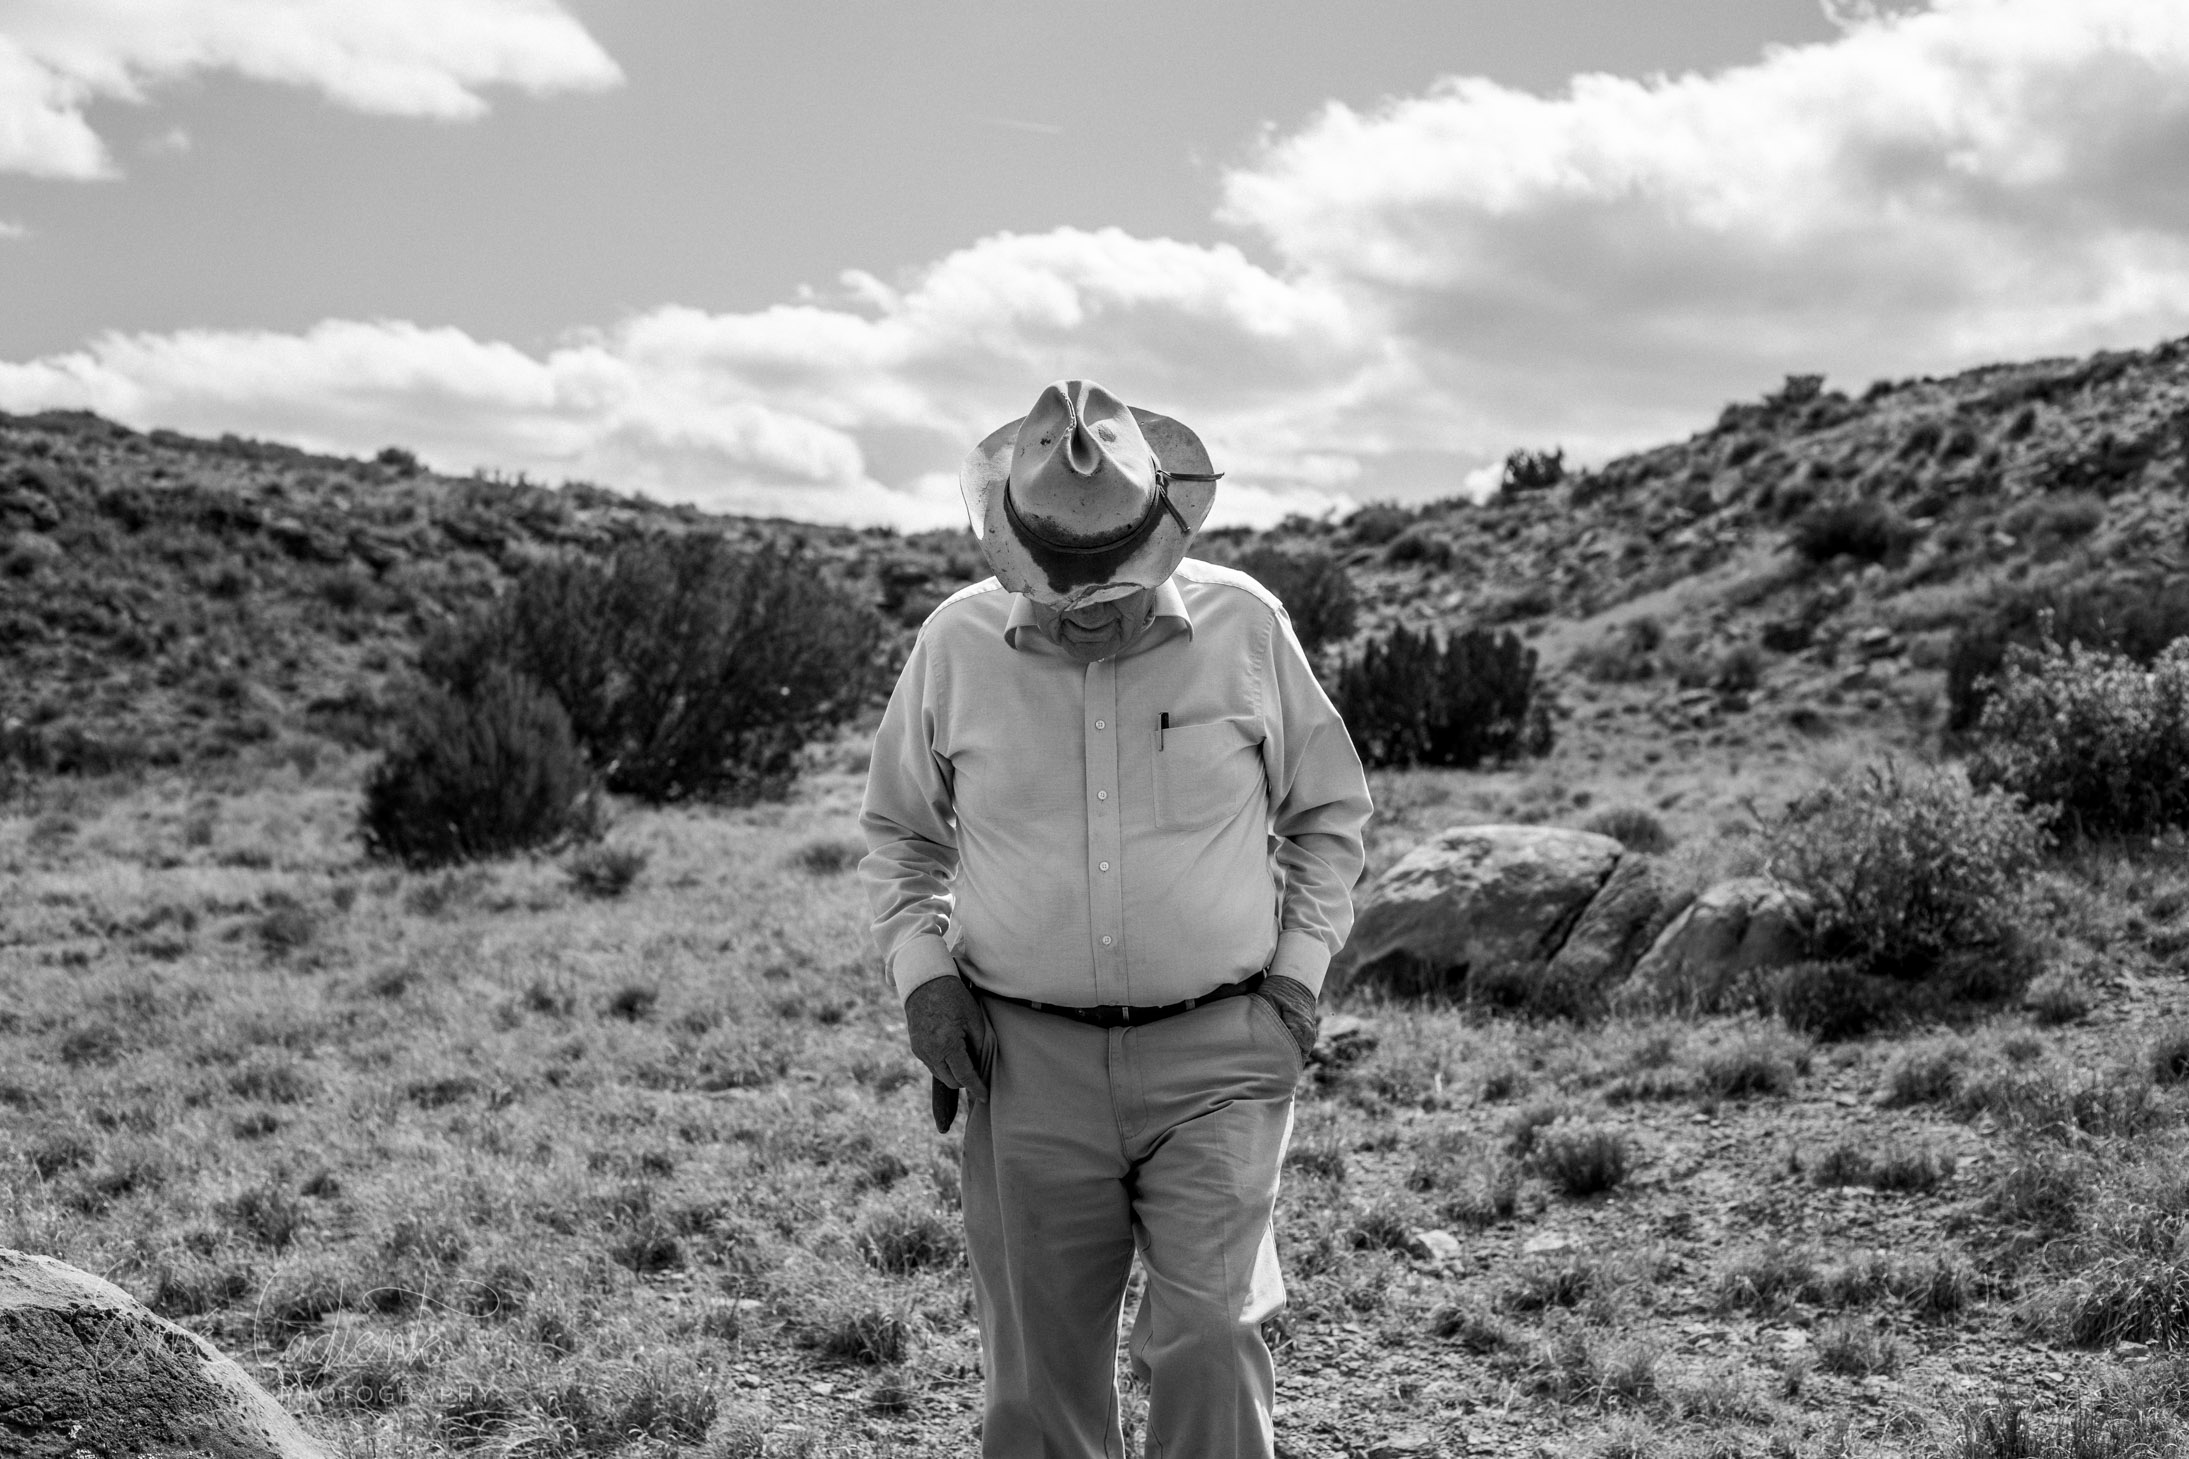 """""""Portrait of my Grandfather""""  This portrait captures my grandfather in his natural element, in a land he has nurtured and loved, and which has rewarded him with a prosperous life's work."""